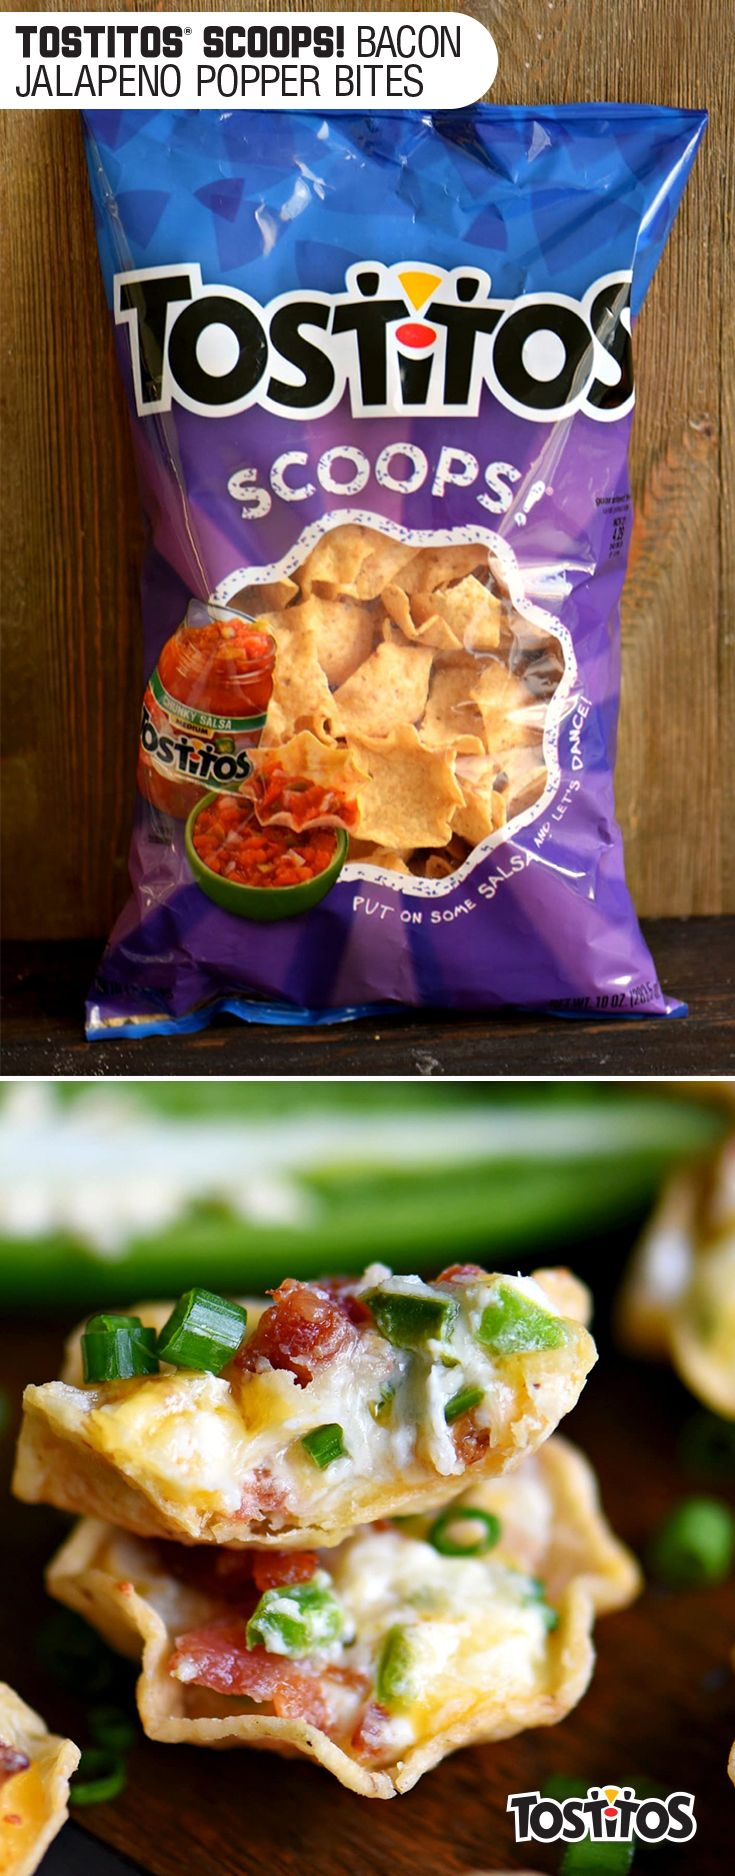 Sponsored by Frito-Lay l When you really want a party, bring cream cheese together with fresh jalapeños, green onions, bacon, and Tostitos®. Jalapeno Poppers. Boom. Spending time with friends just got a whole easier #mingleinabox